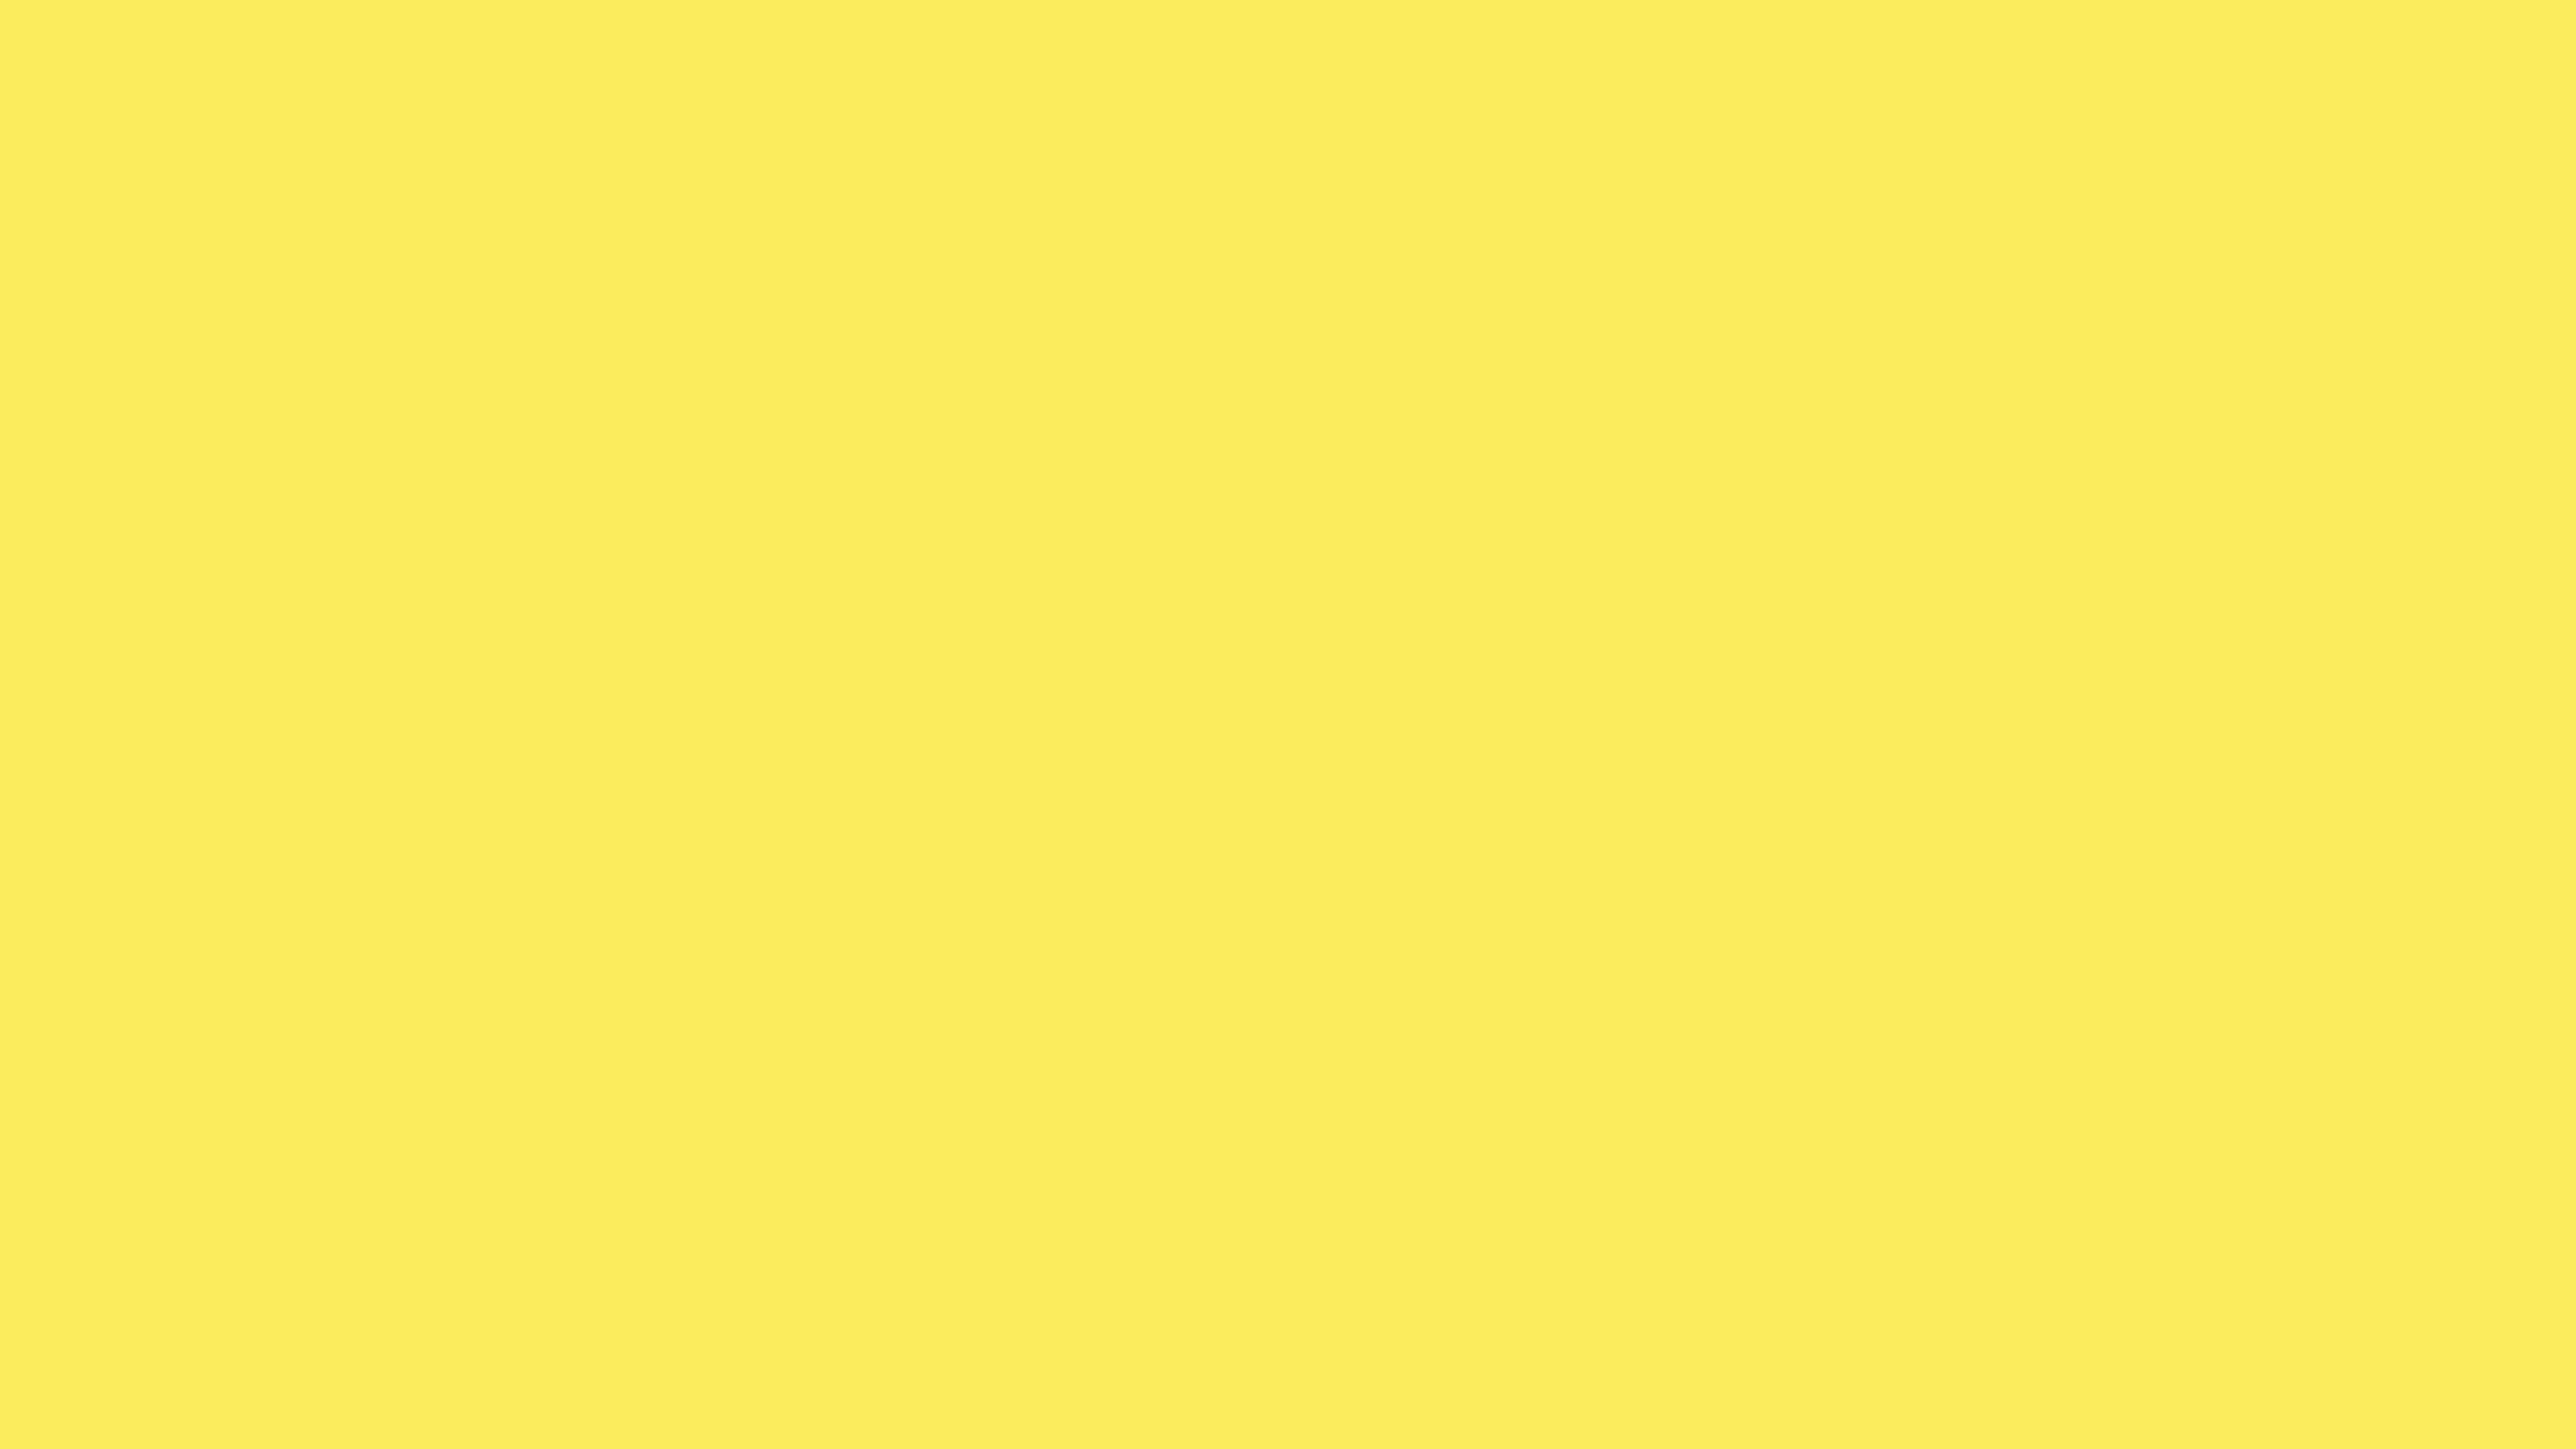 3840x2160 Corn Solid Color Background